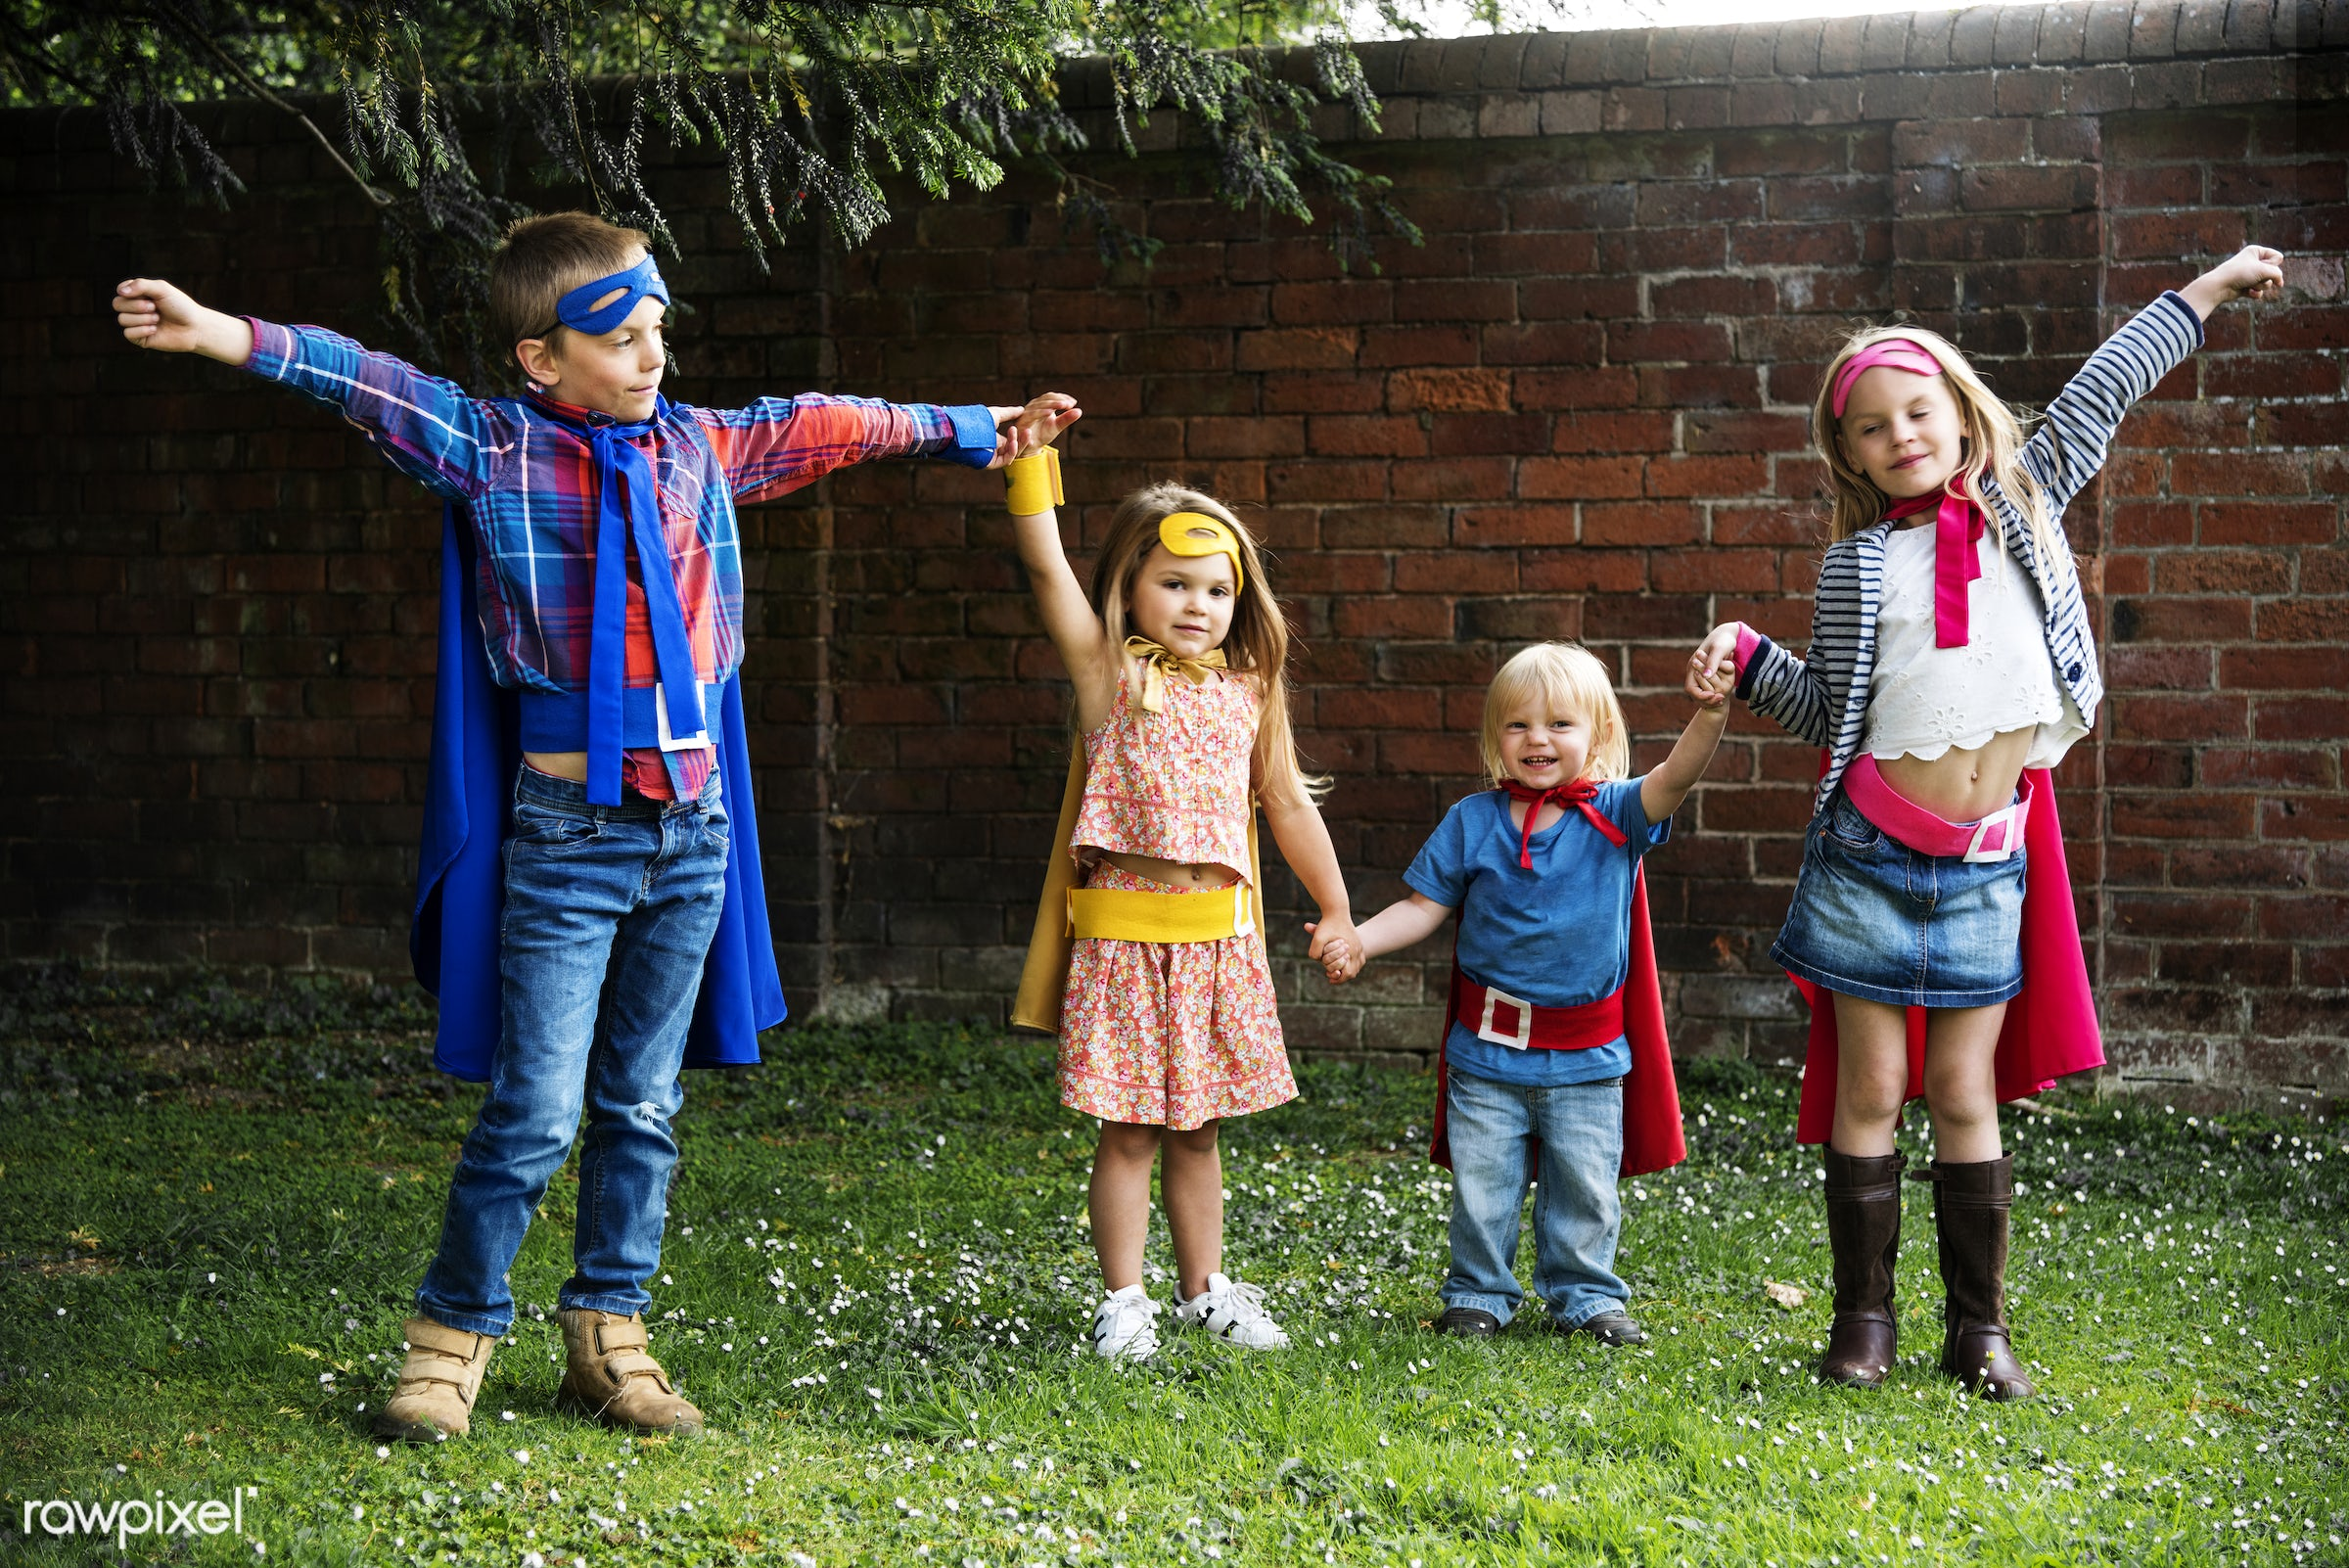 activity, aspirations, boy, brave, brick wall, brother, building, caucasian, cheerful, child, childhood, children, colourful...